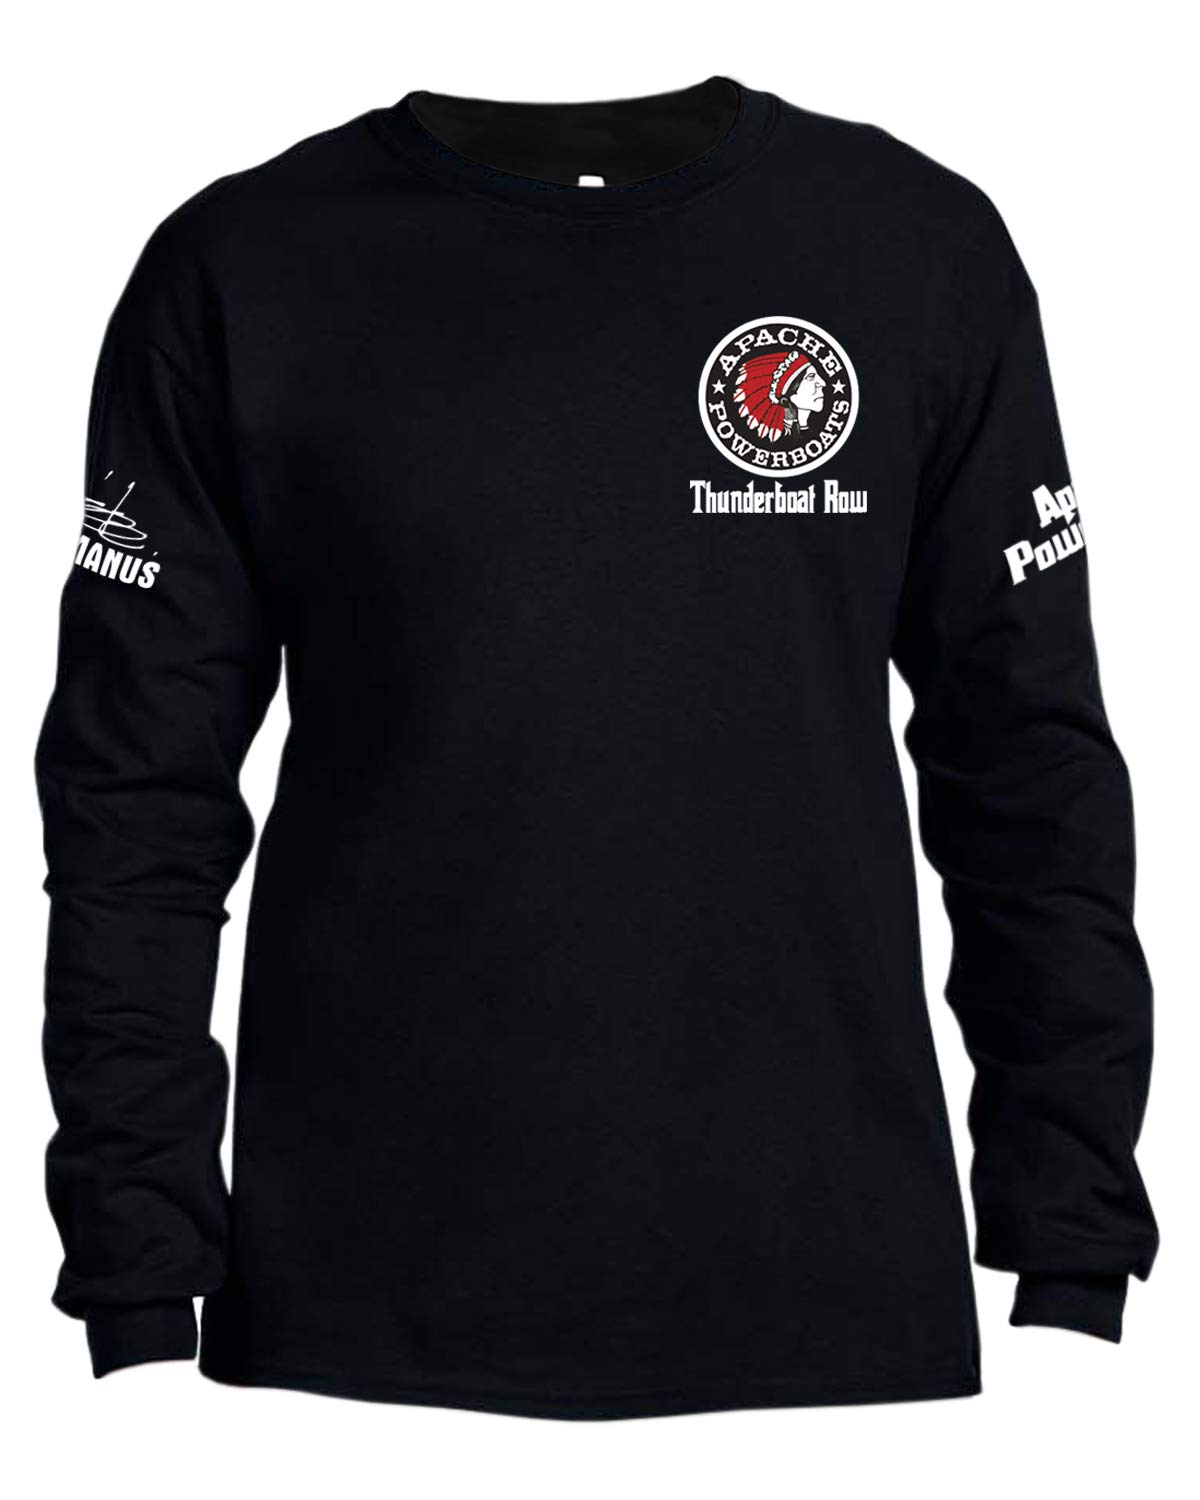 Apache Powerboats Limited Edition Thunderboat Row Long Sleeve T-Shirt (X-Large) Black by Apache Powerboats